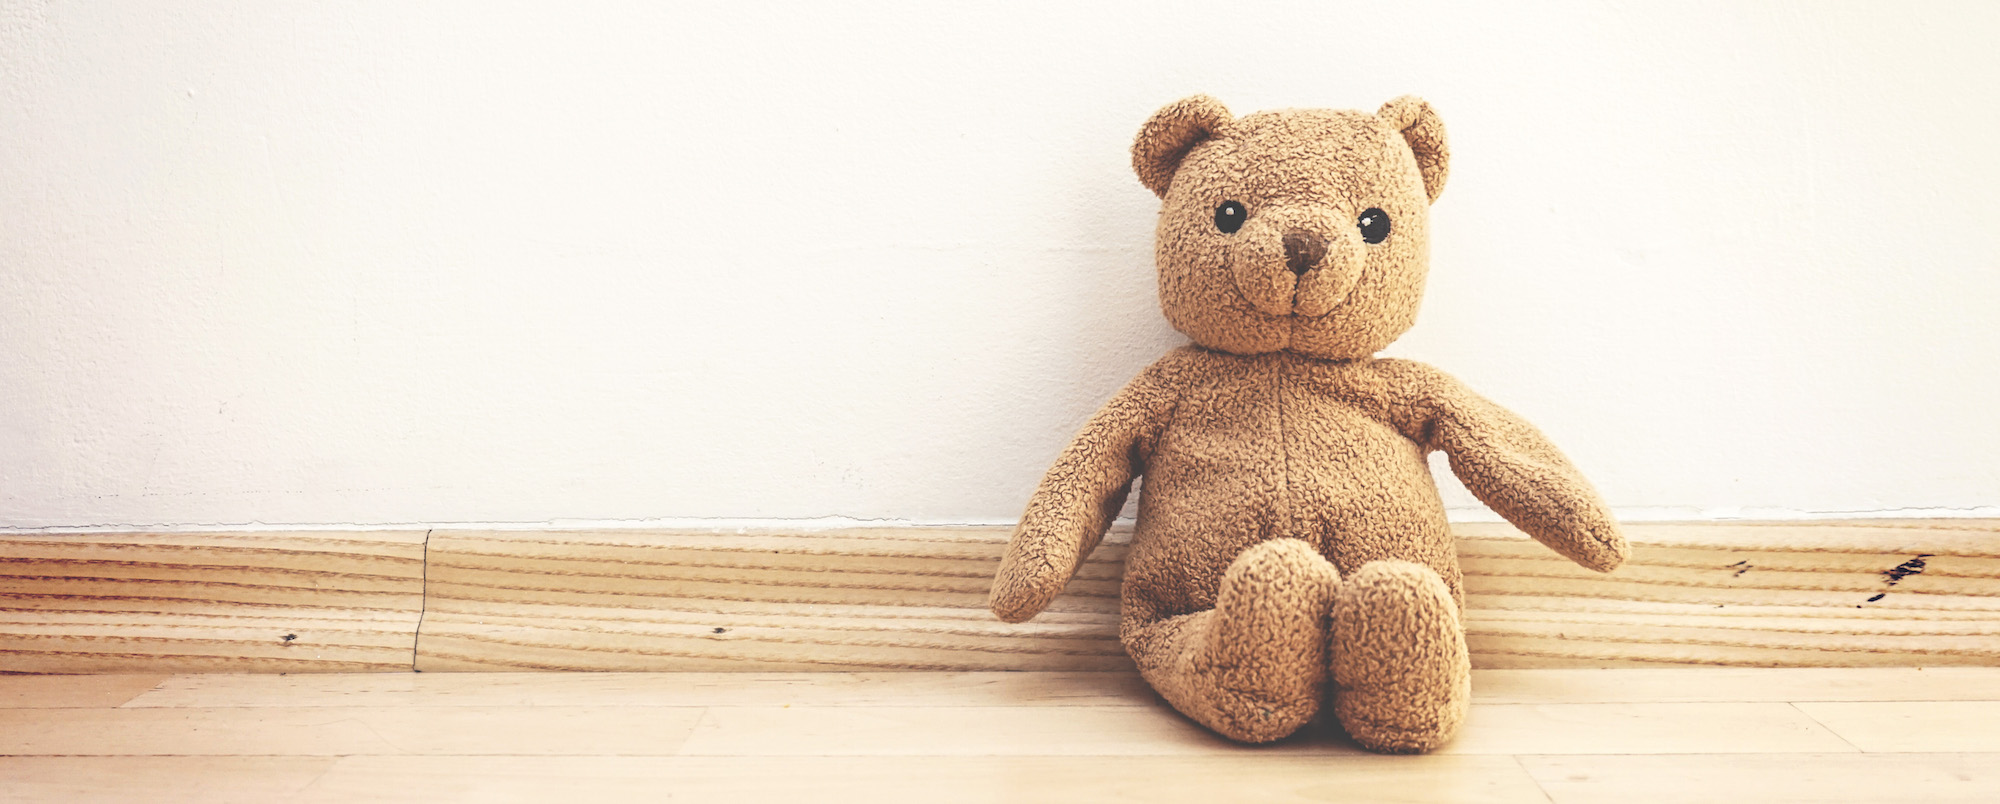 Teddy-bears-for-child-abuse-victims-and-other-donation-items1